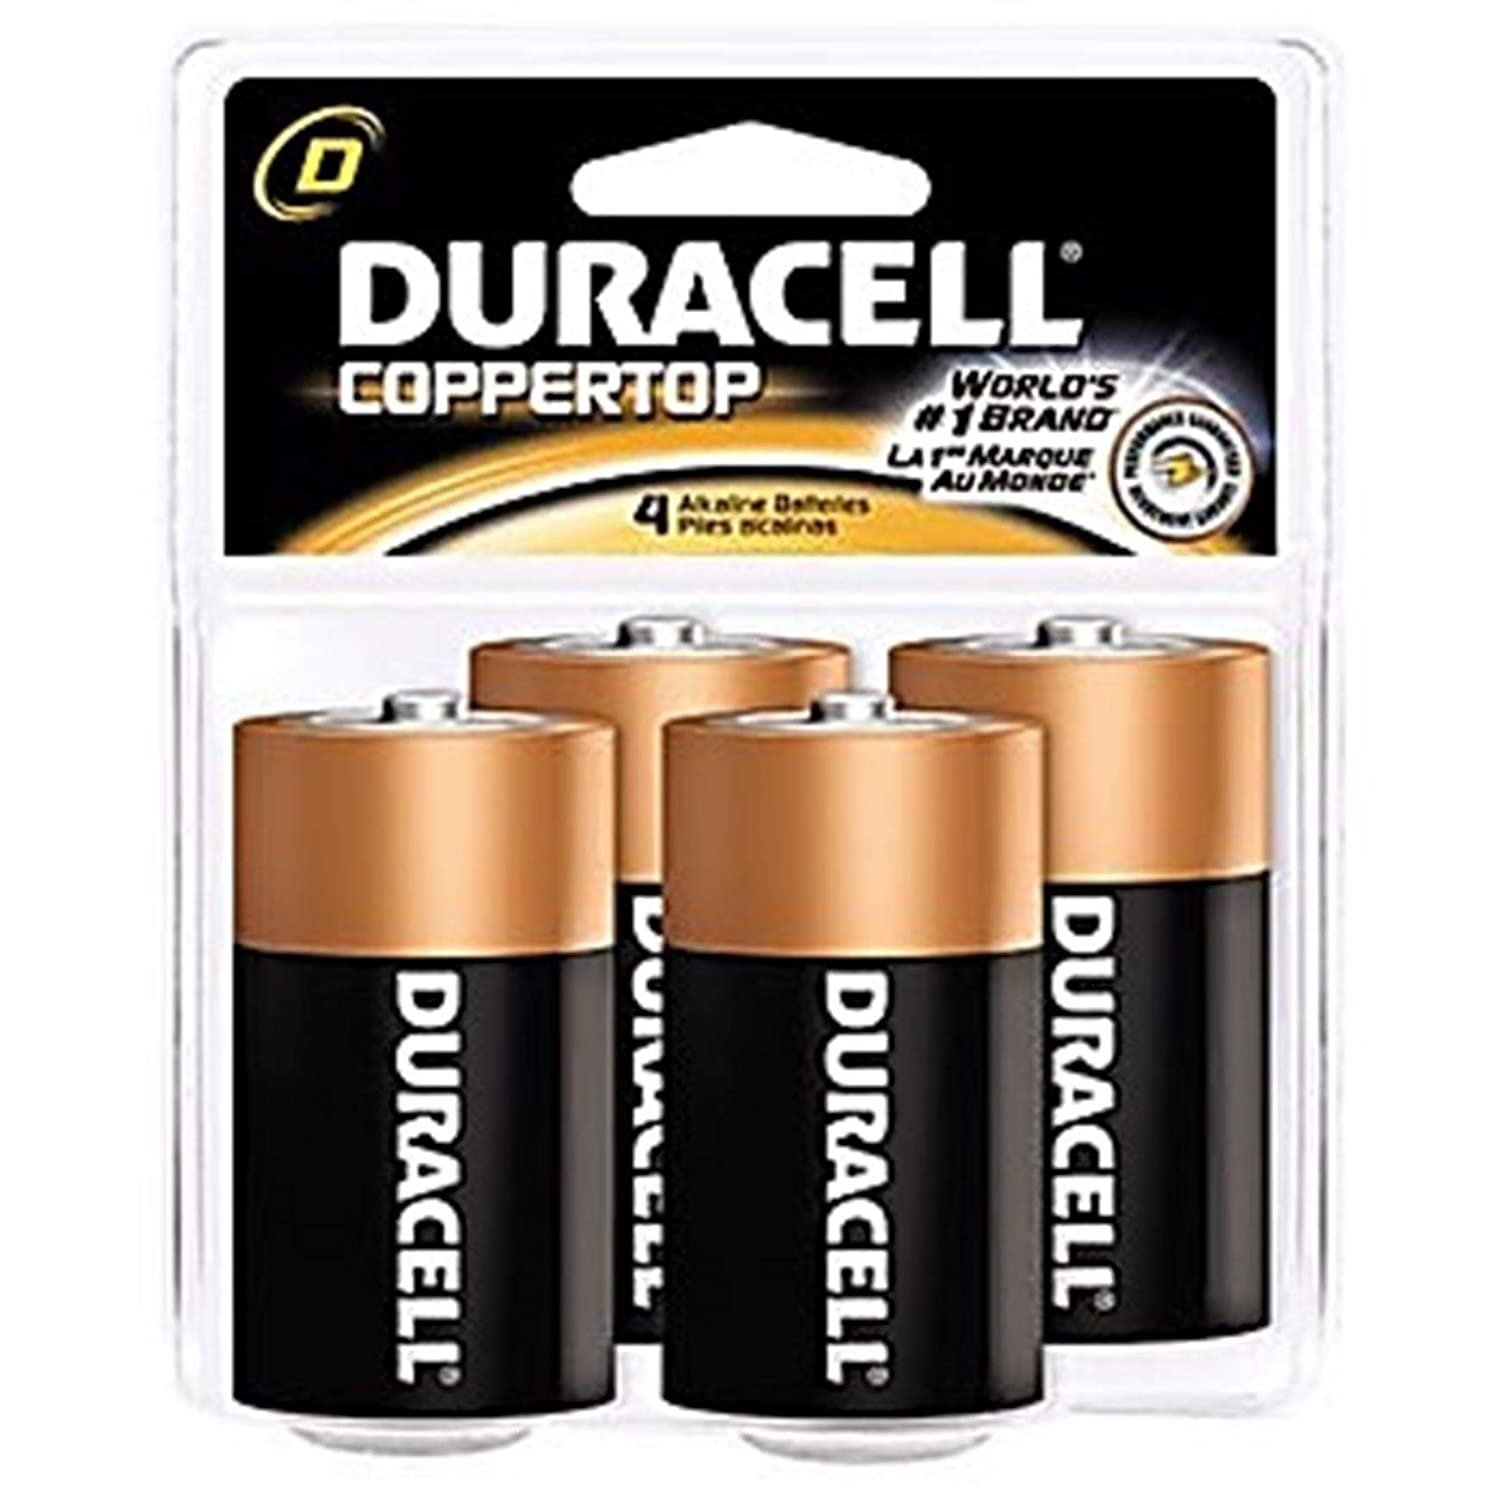 Image of AAA Duracell PGD MN2400B2Z Coppertop Retail Battery, Alkaline, AAA Size (Pack of 108)